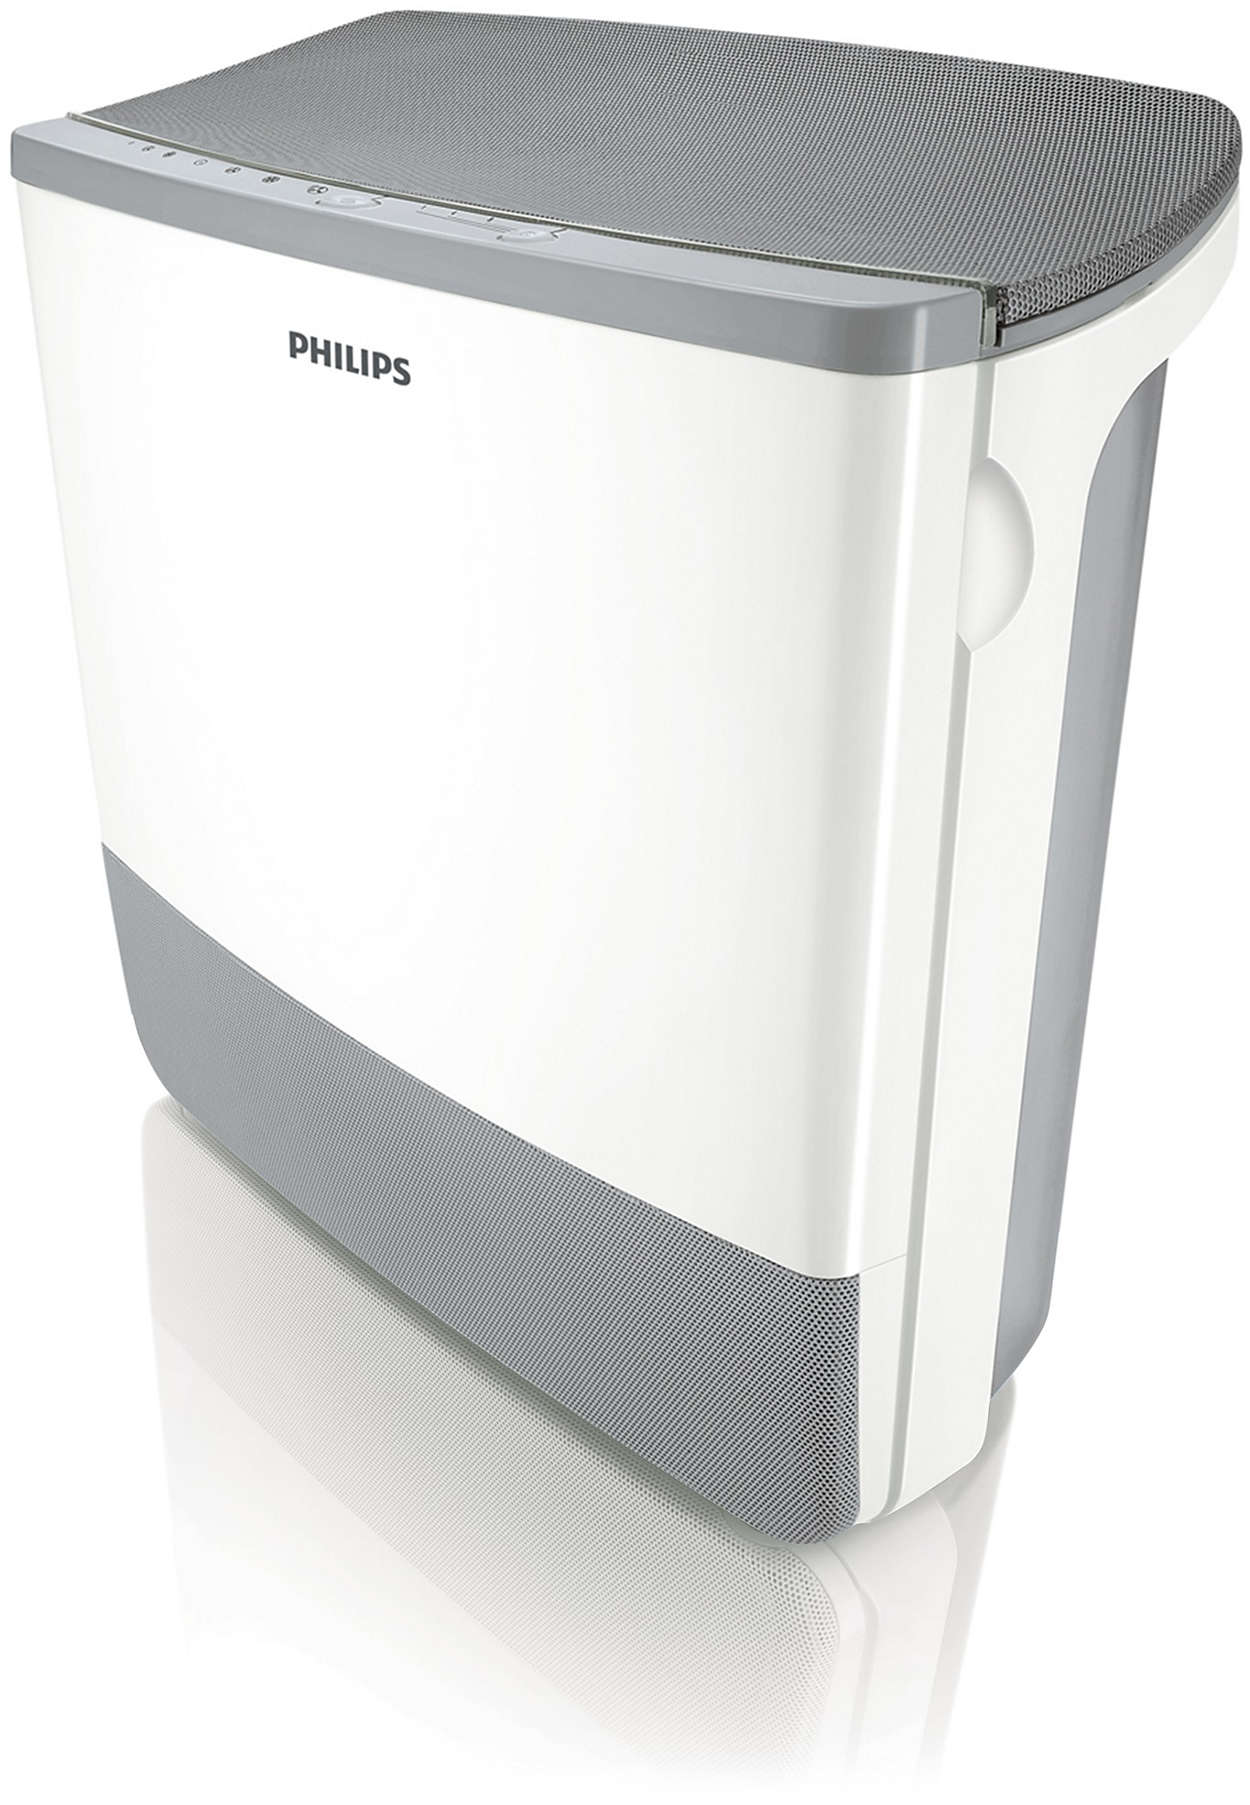 Living room air purifier AC4065/00 | Philips